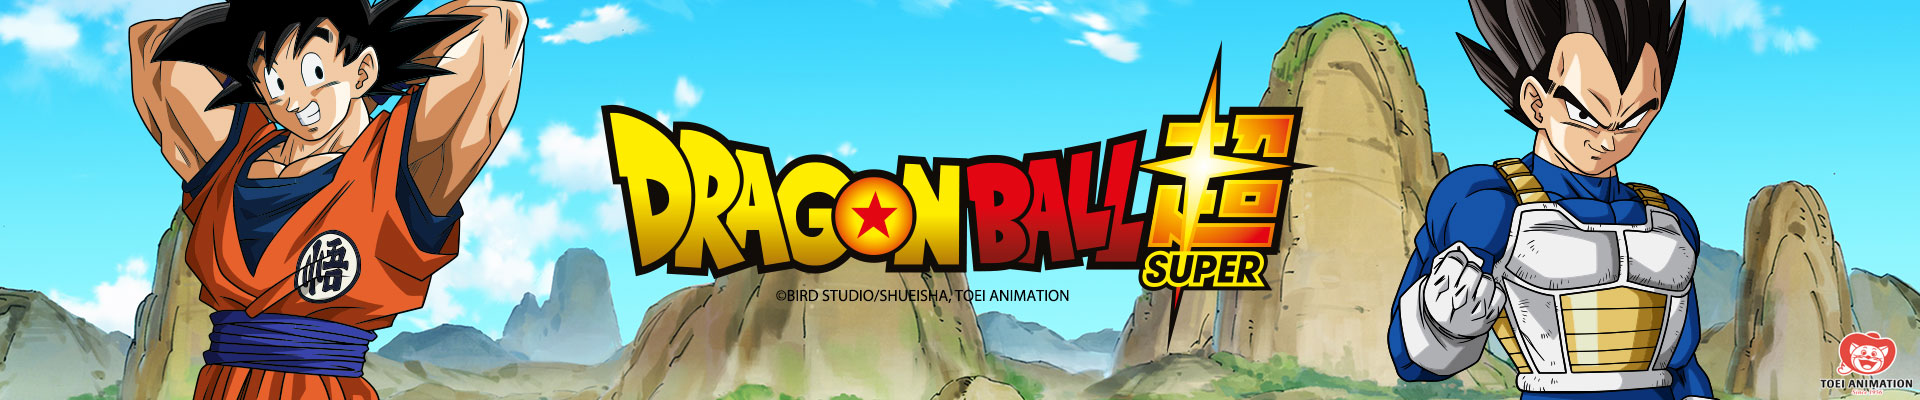 Dragon Ball Super ™